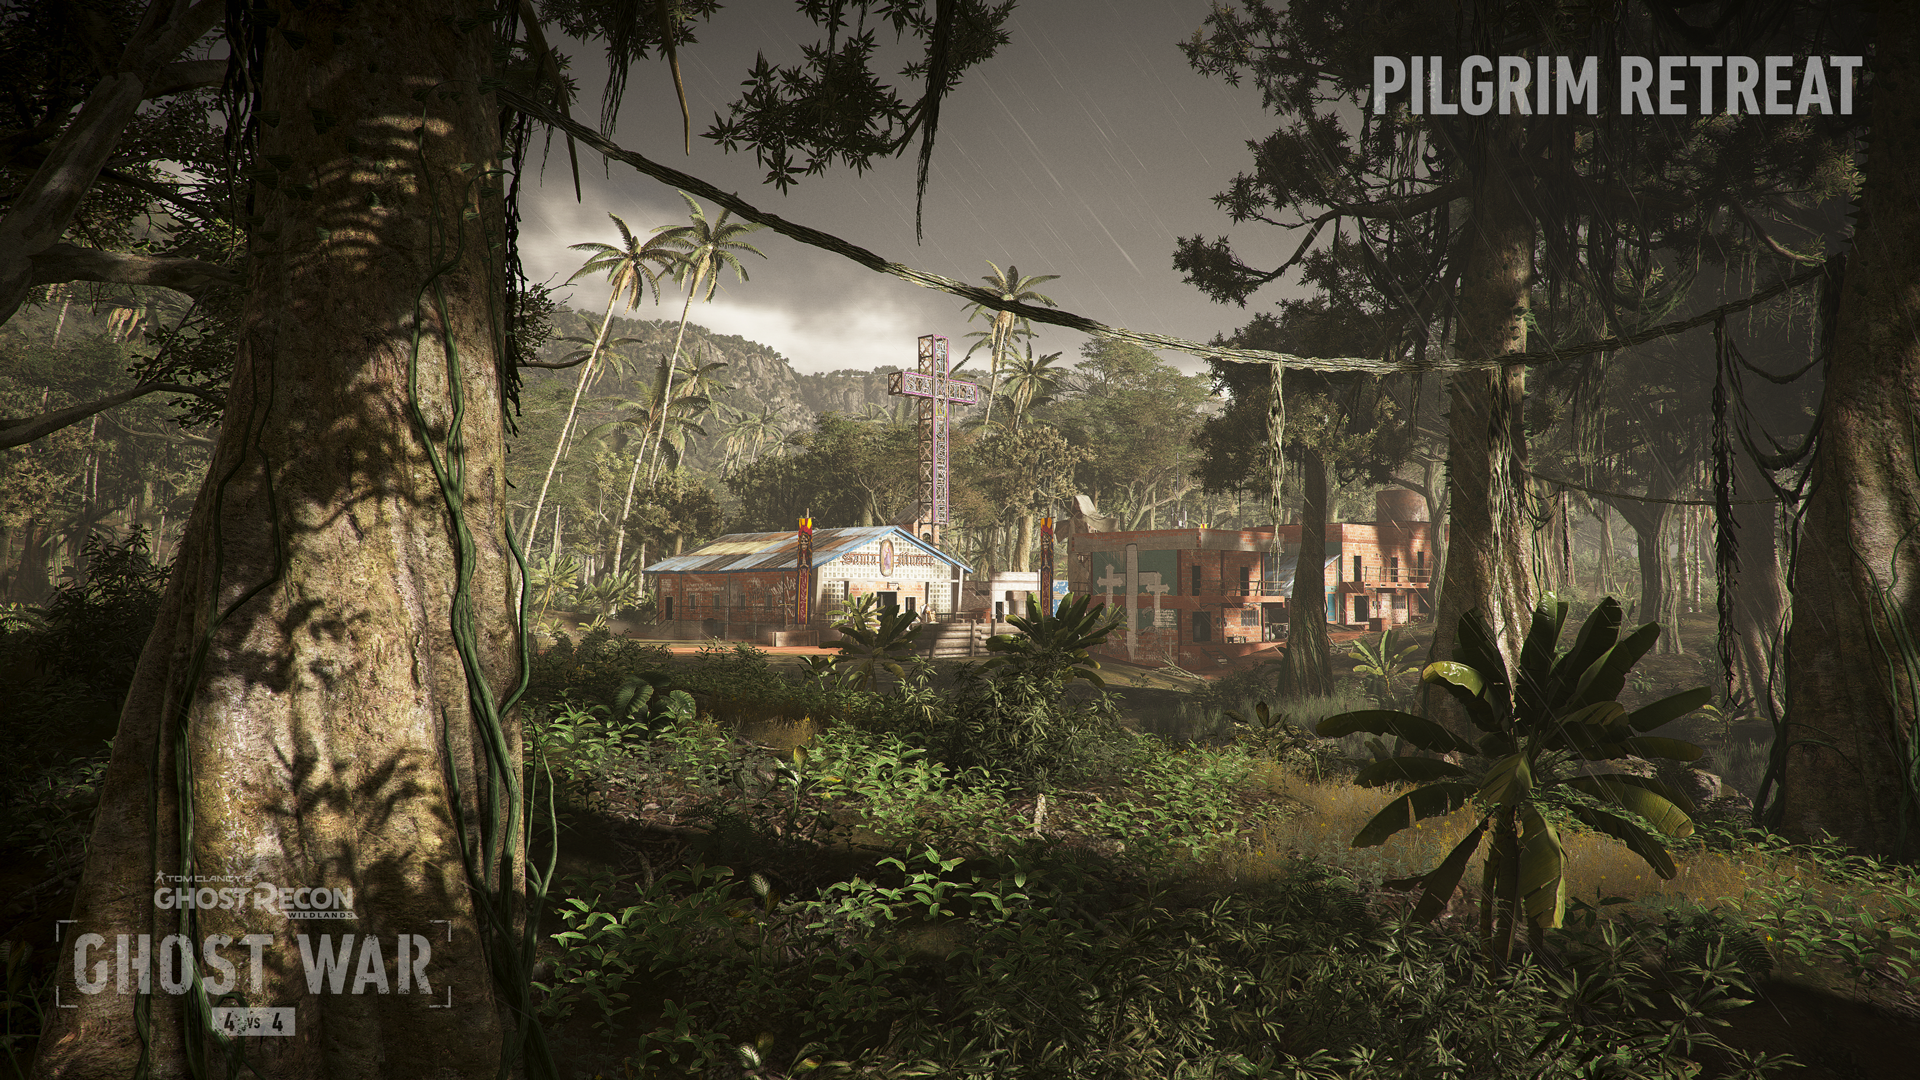 GRW_PVP_OB_PilgrimRetreat_1920x1080_1505233945